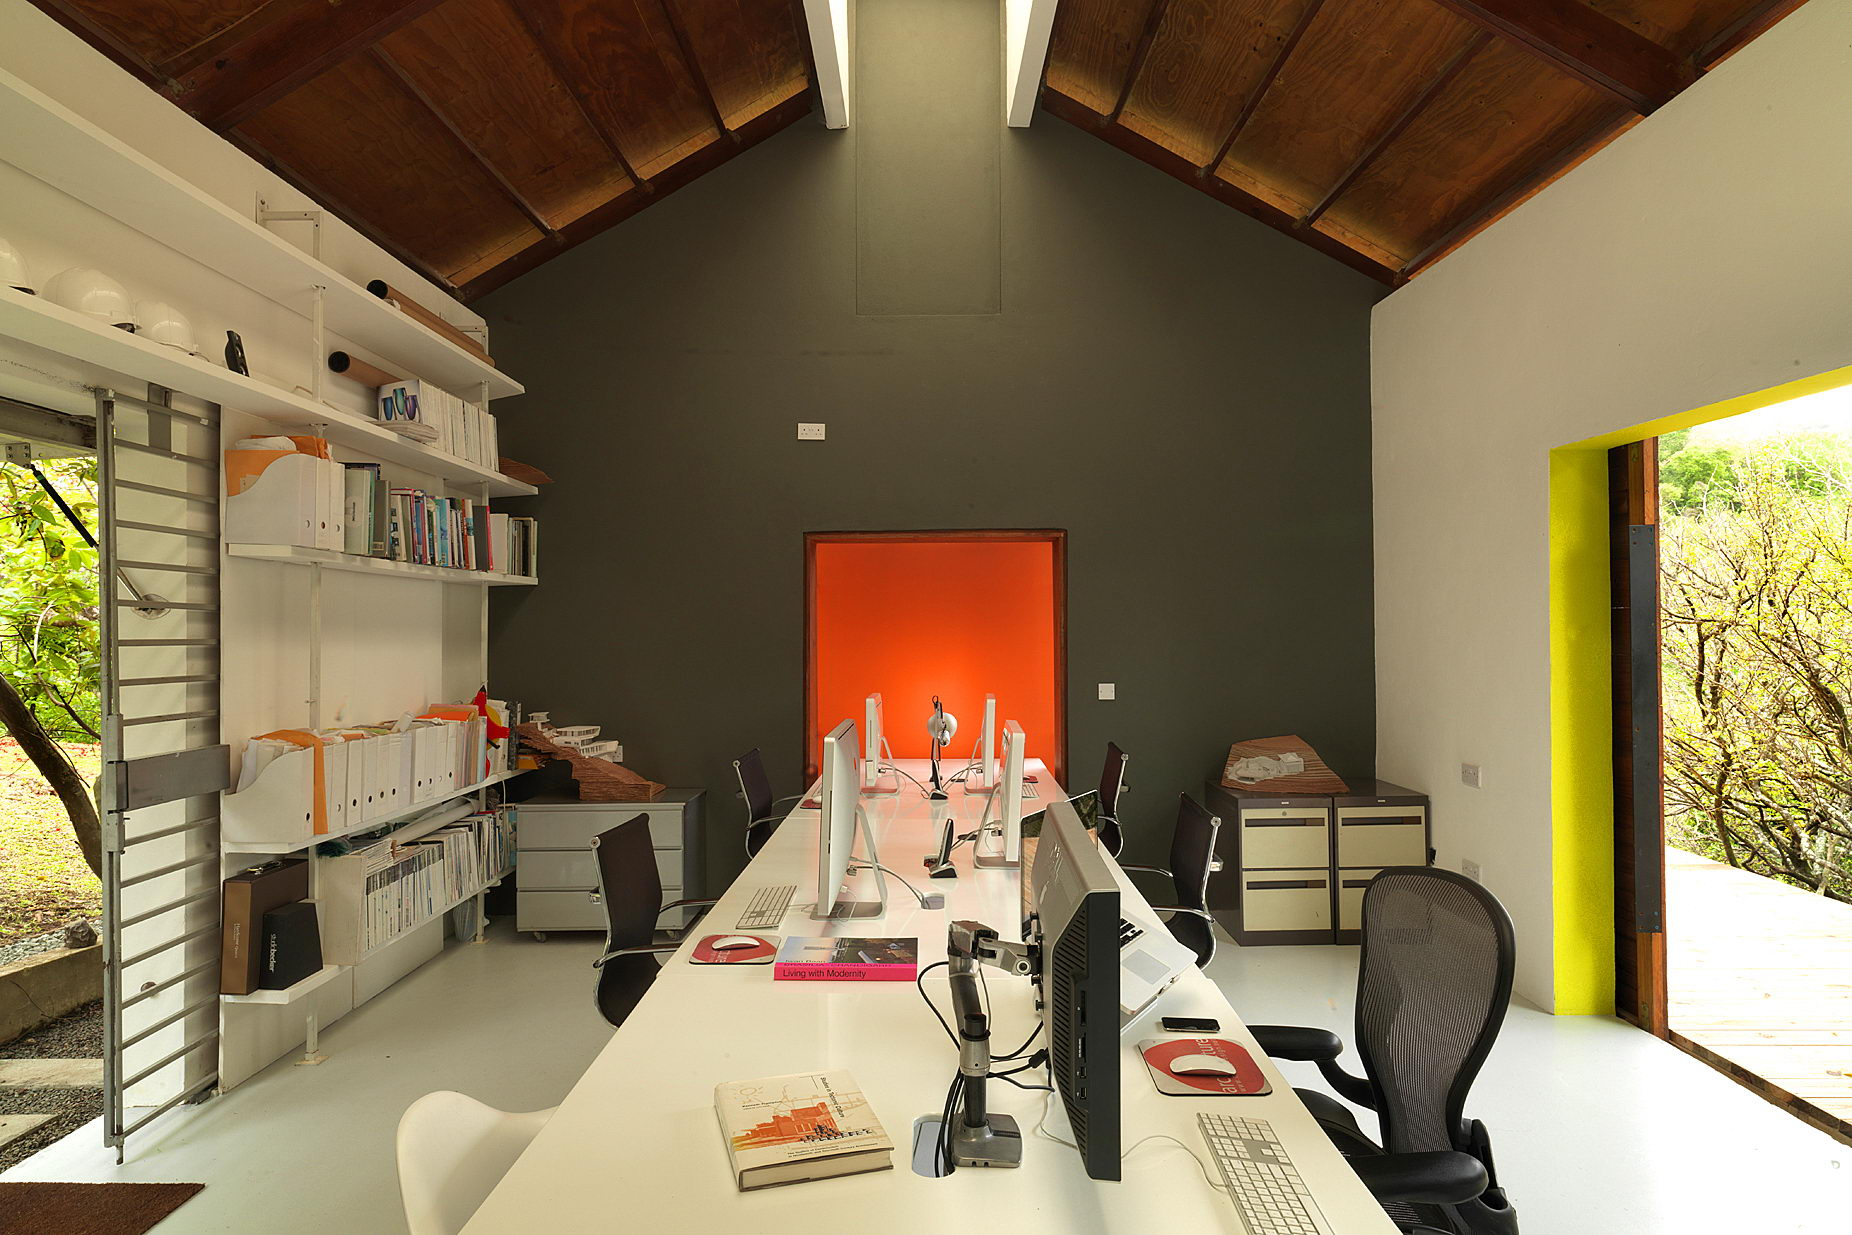 Modren Architecture Office Studio For And Coworking Space As Built